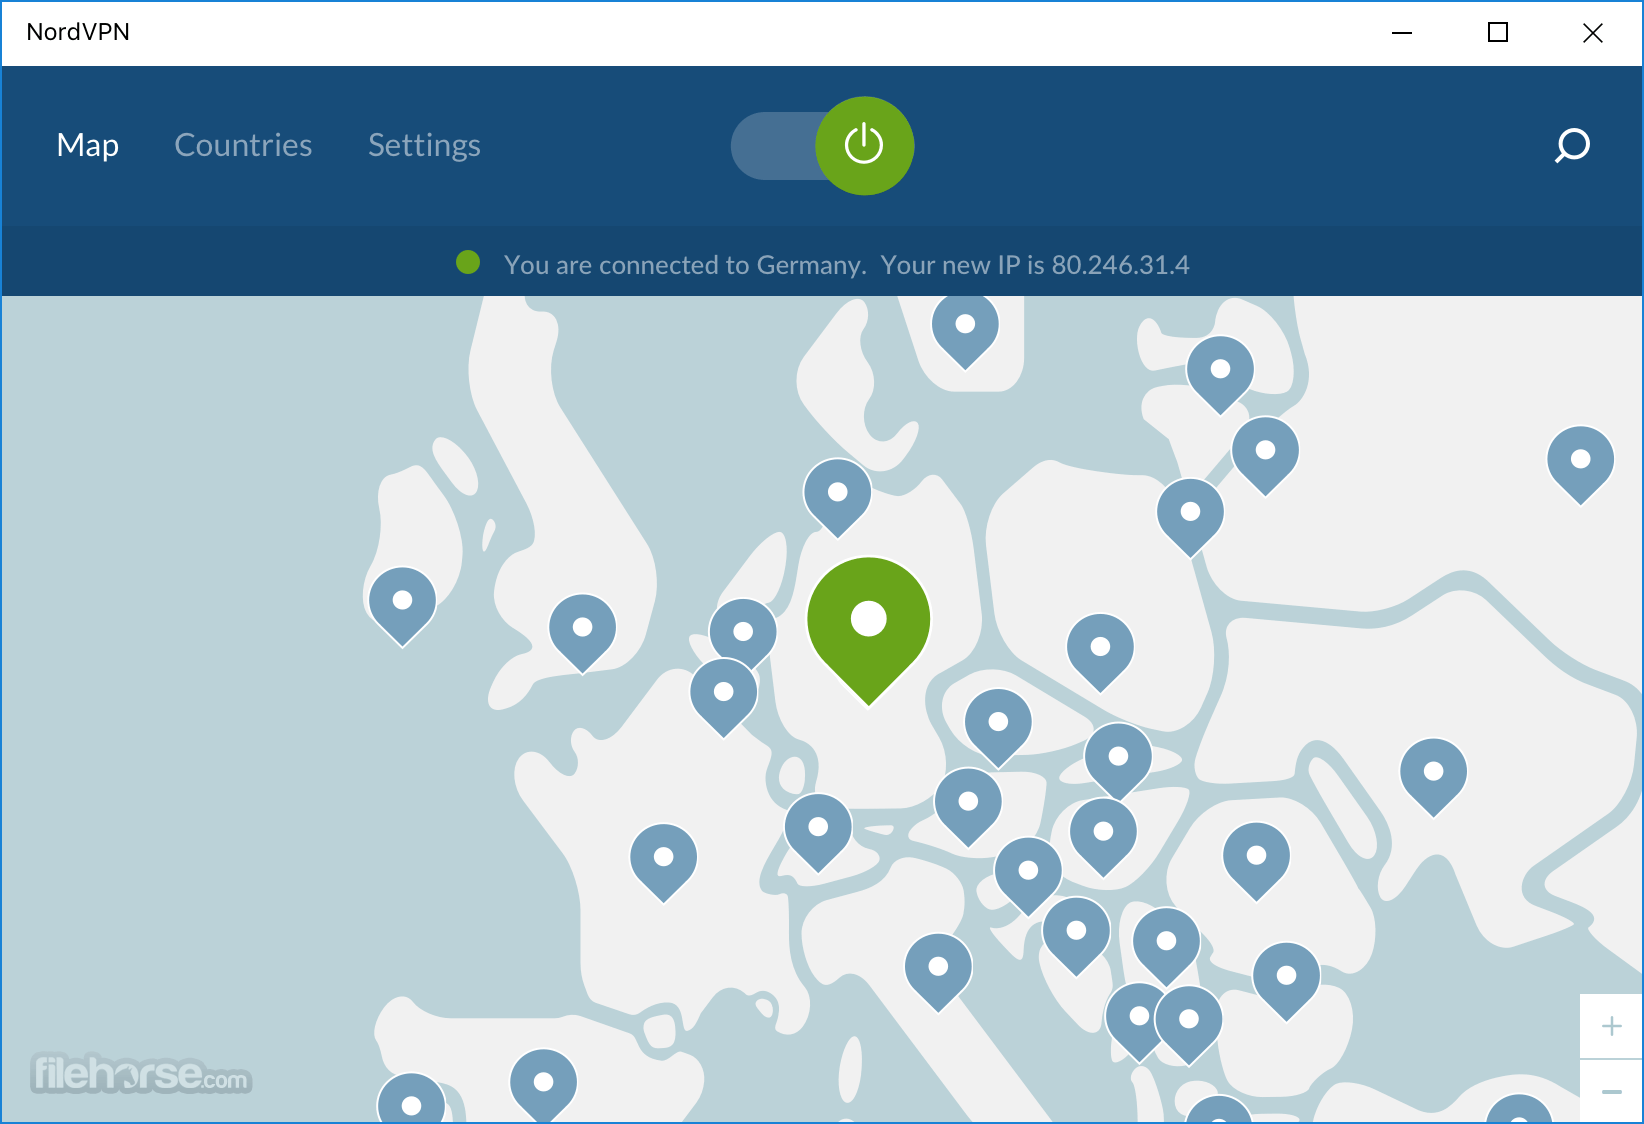 NordVPN Download (2019 Latest) for Windows 10, 8, 7